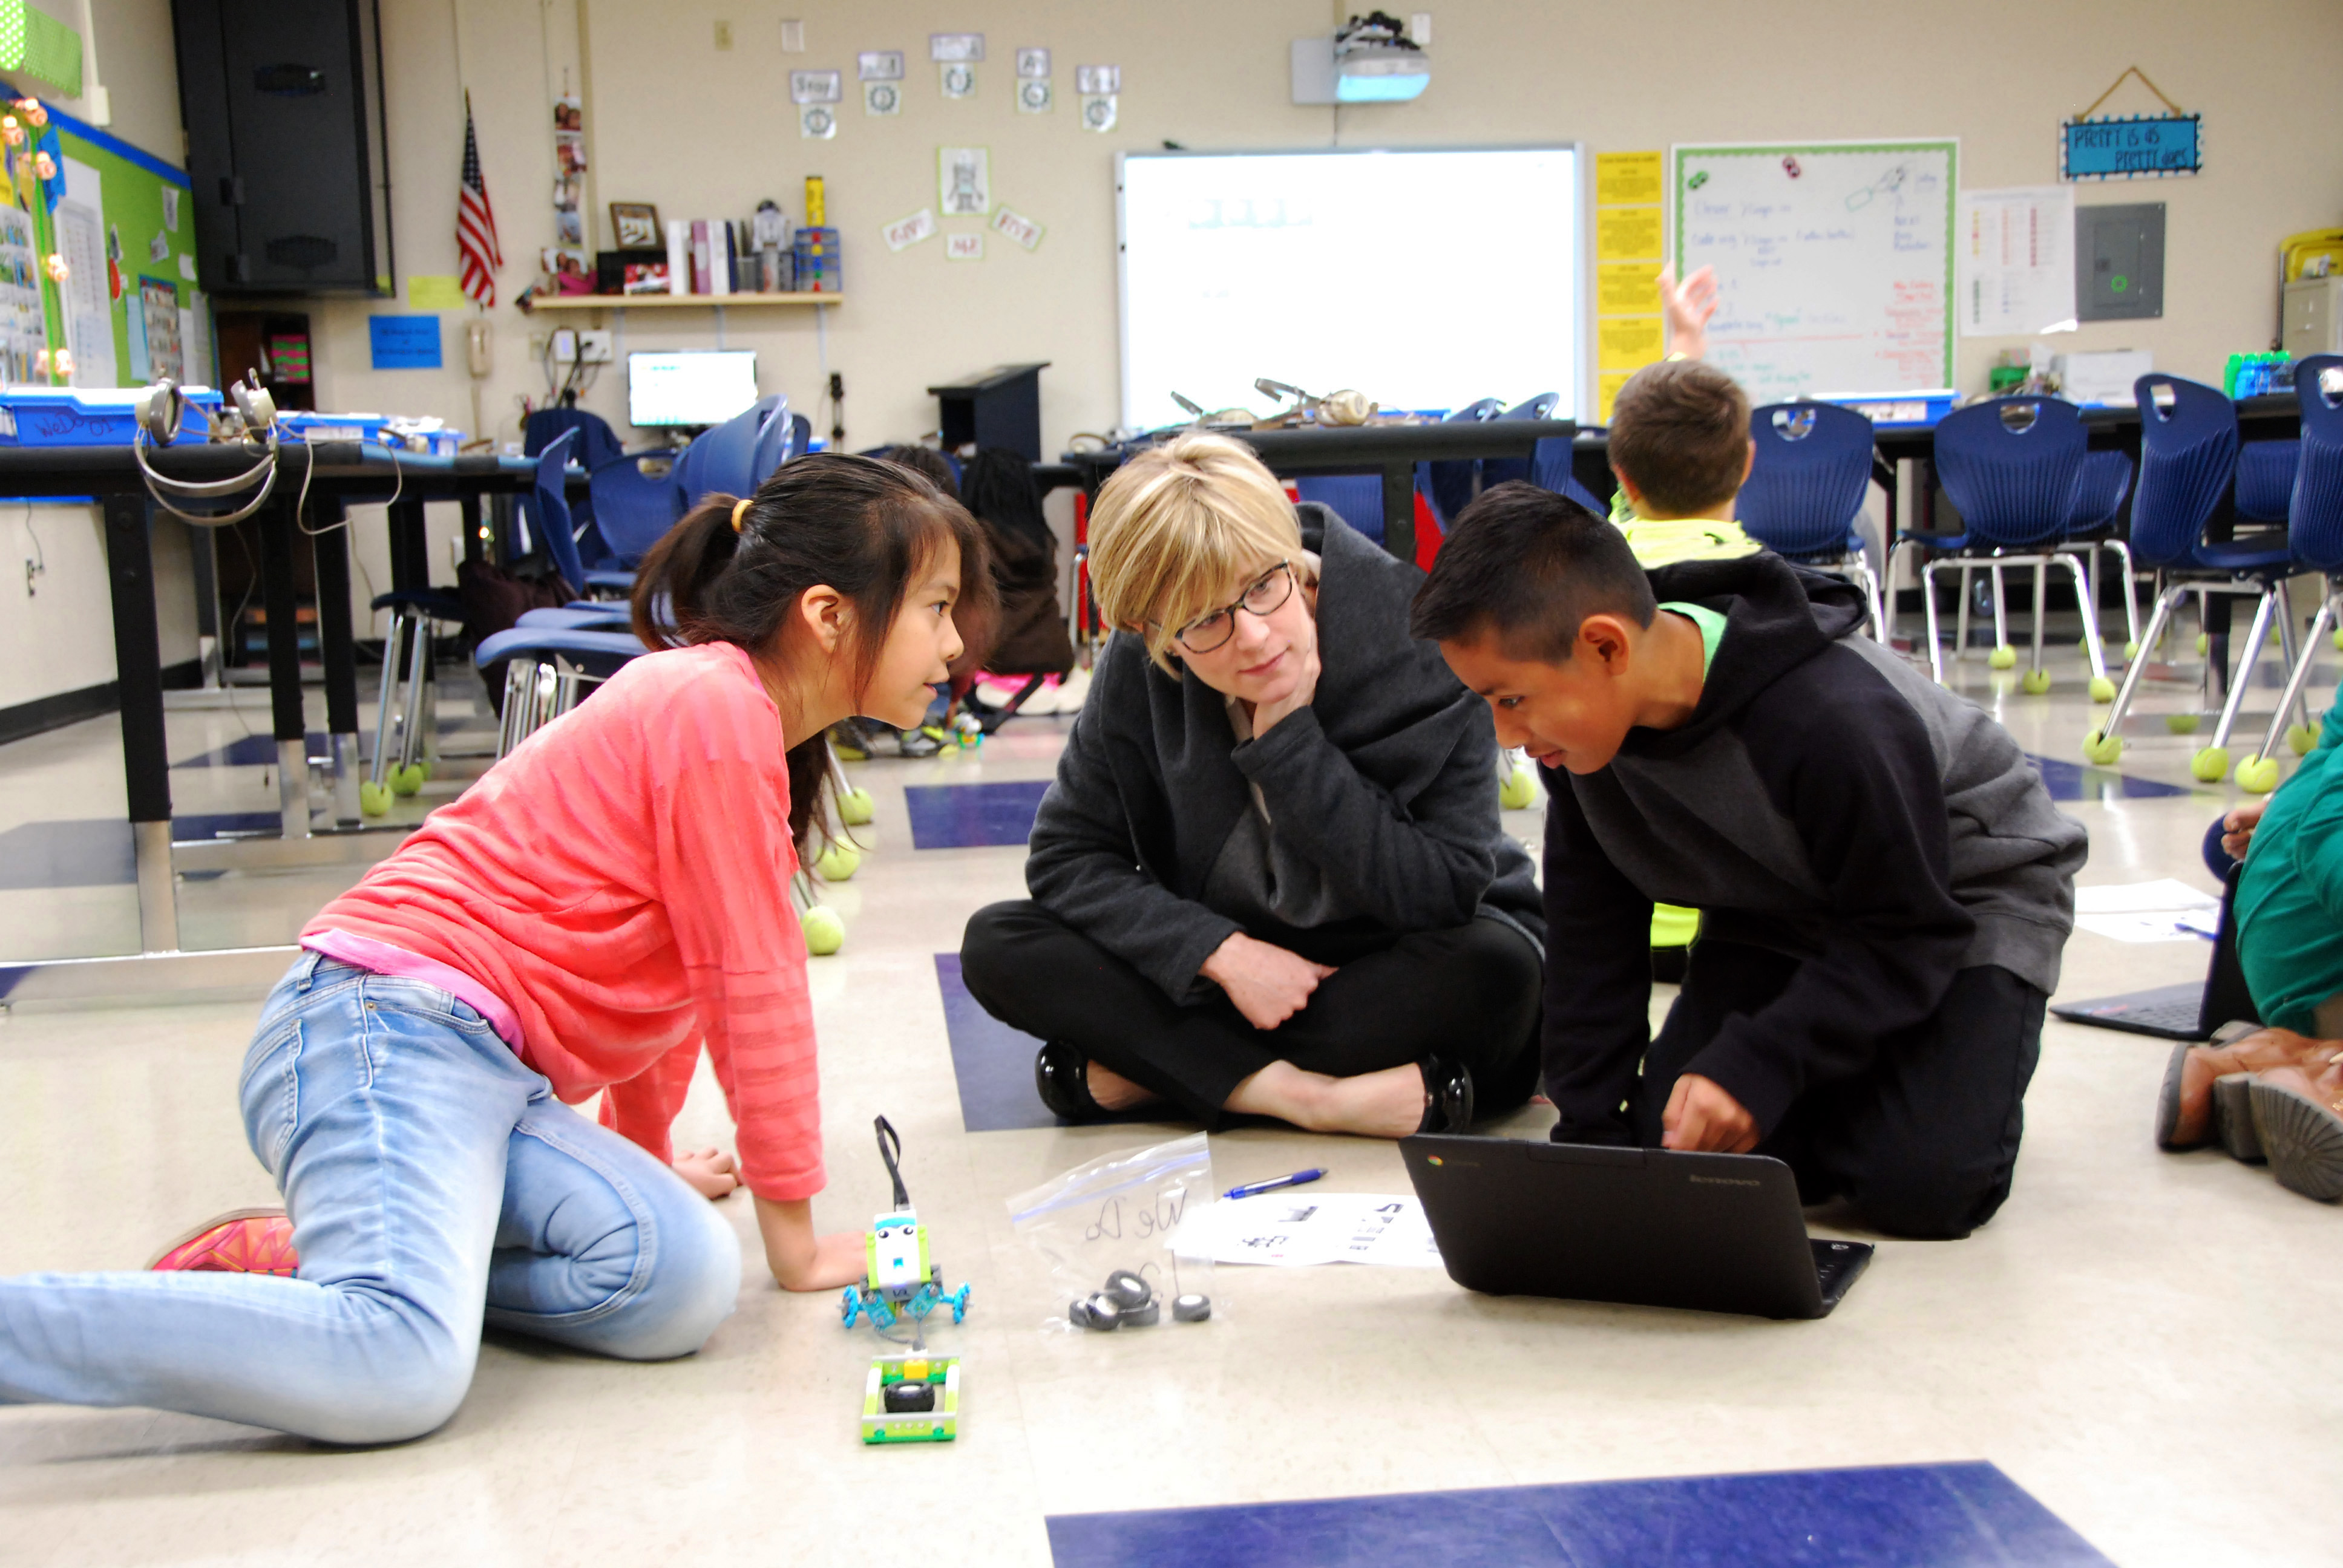 Dr. Caitlin Dooley (center), Georgia Department of Education Deputy Superintendent of Teaching and Learning, observes fourth graders Haley Gonzalez, from left, and Enrique Lopez as they program robots in the coding classroom at Cross Creek Elementary.